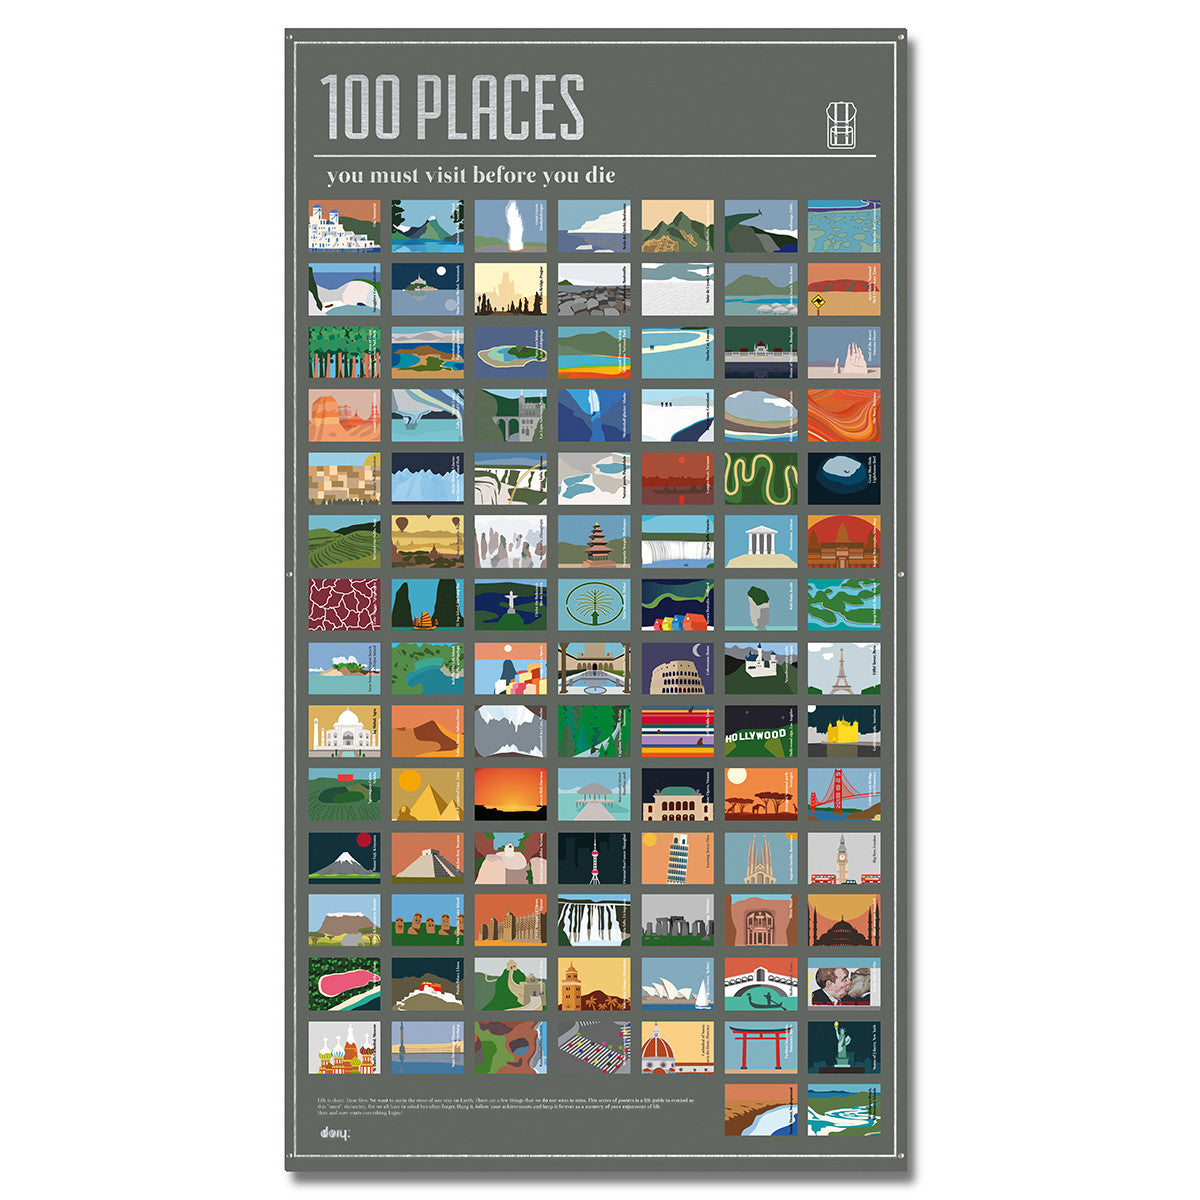 100 places you must visit before you die